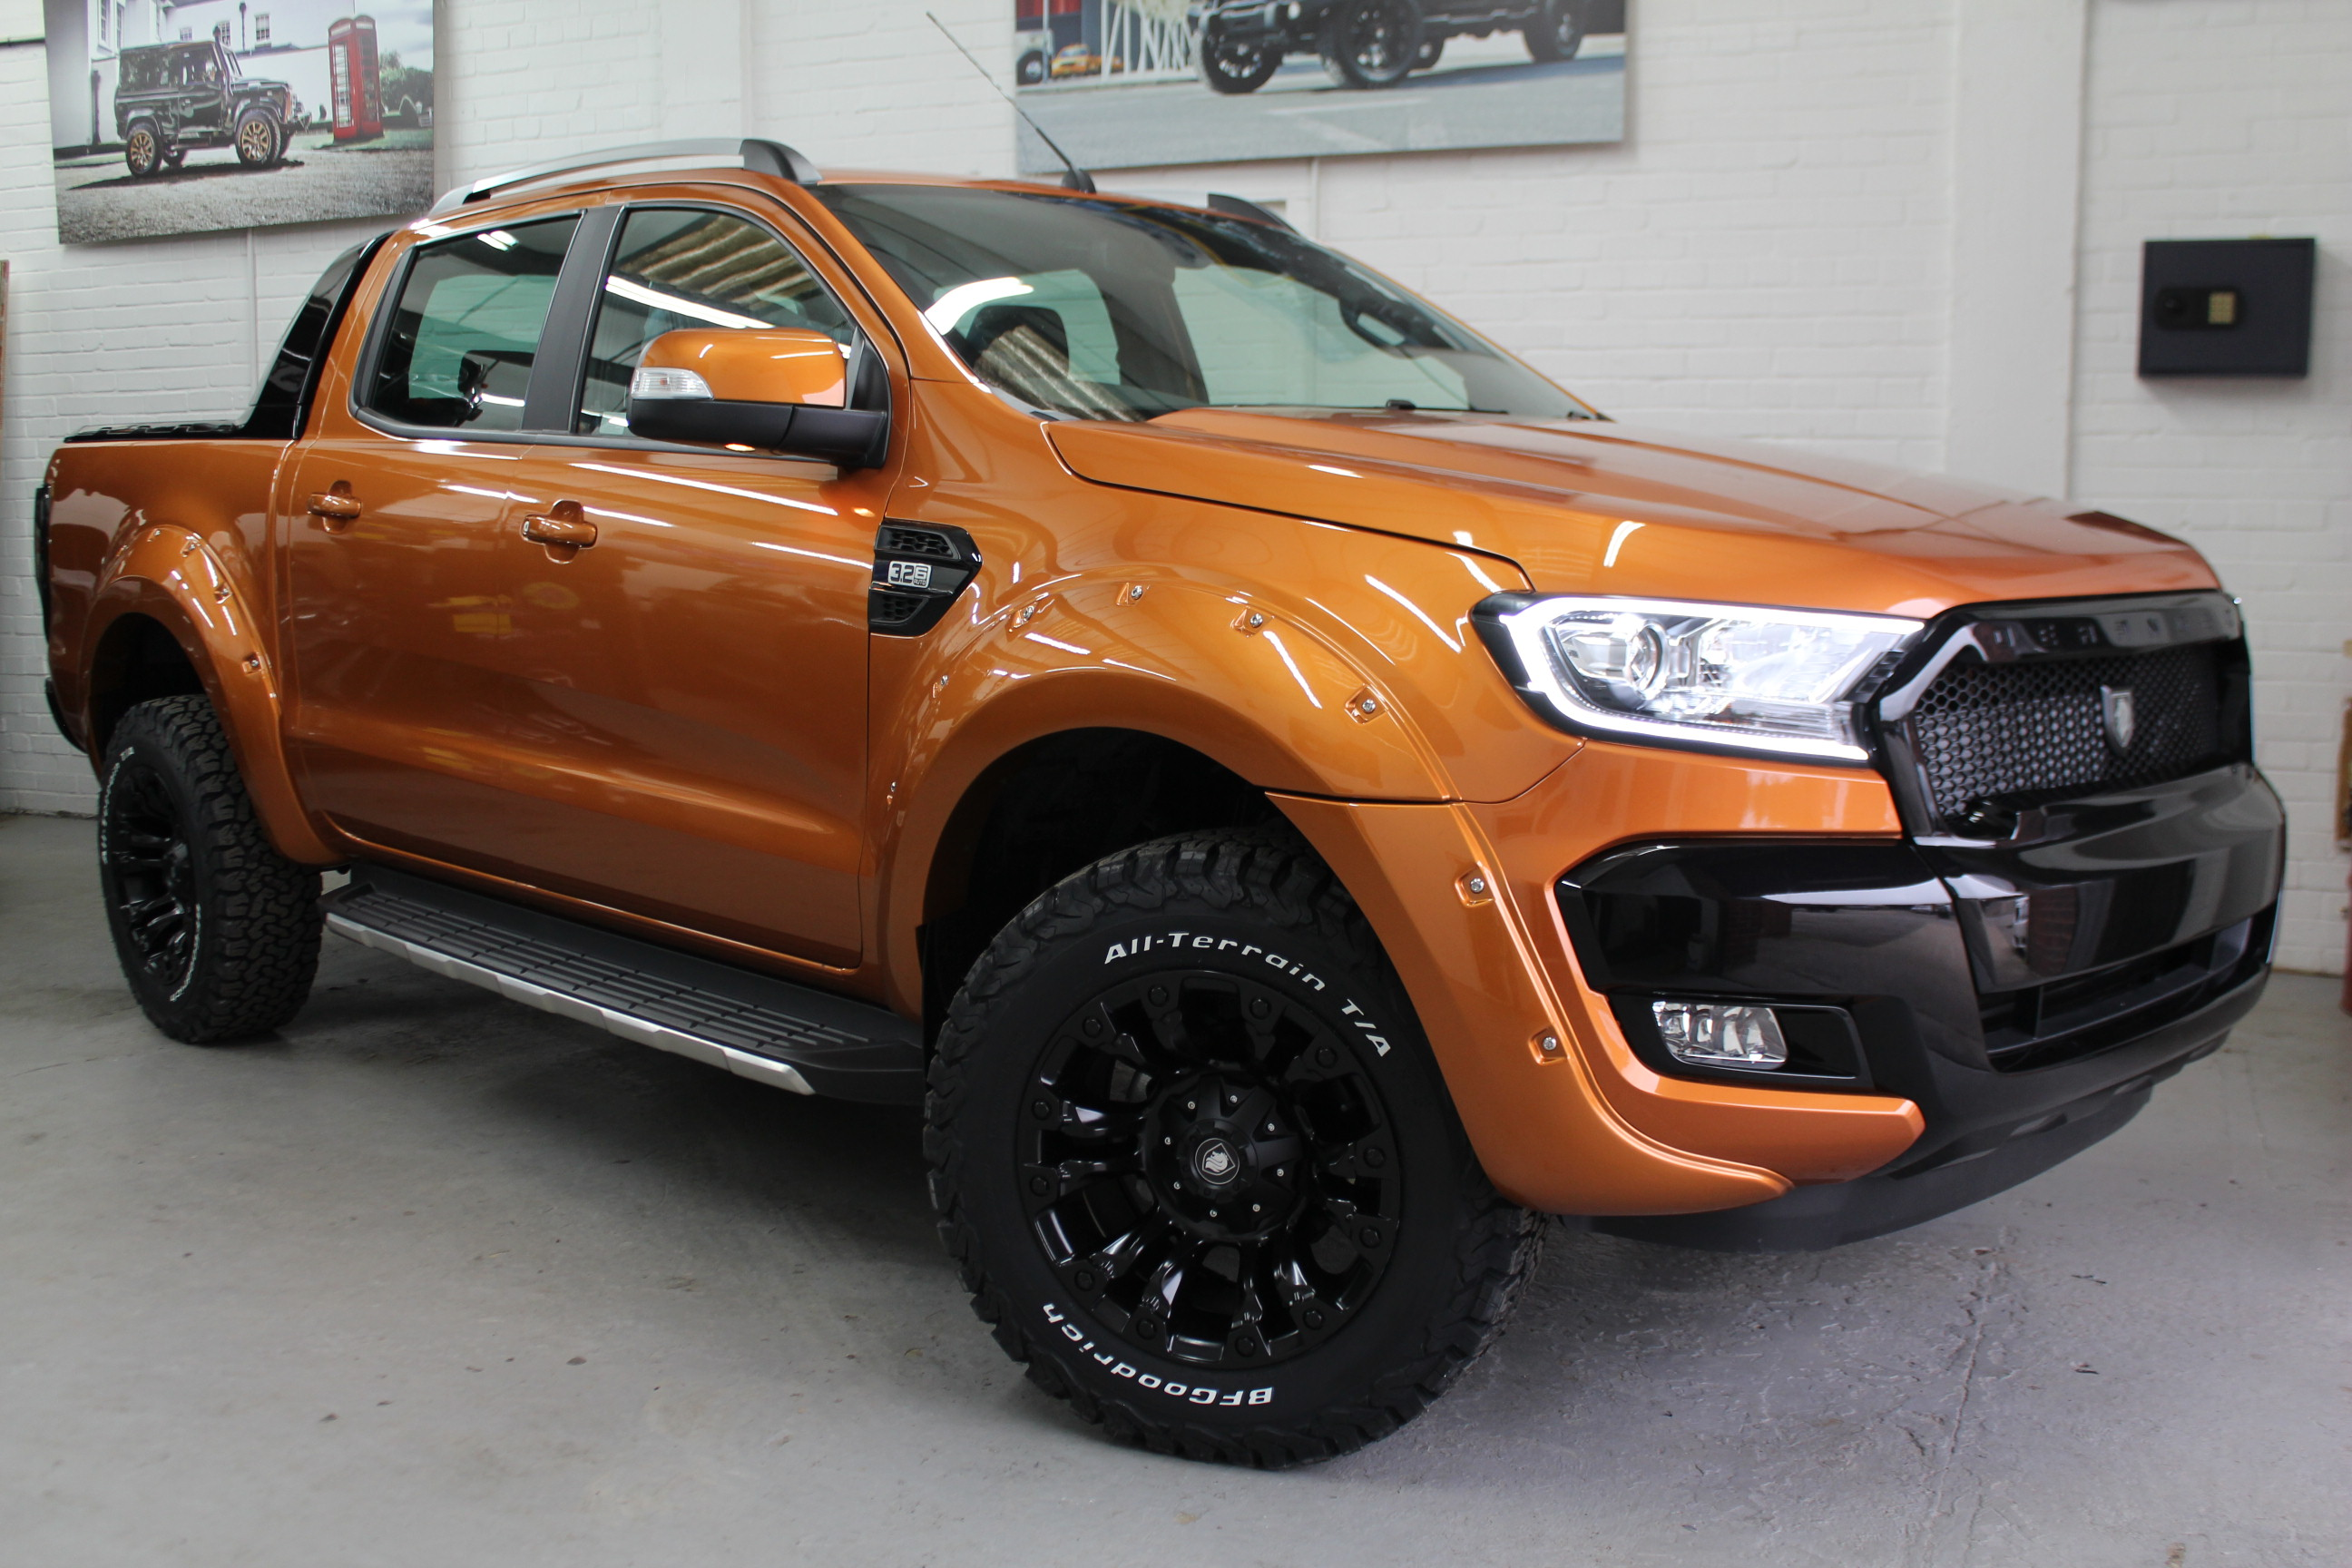 2018 18 deranged ford ranger 3 2 tdci limited 2 double cab pick up 4x4 4dr deranged vehicles. Black Bedroom Furniture Sets. Home Design Ideas